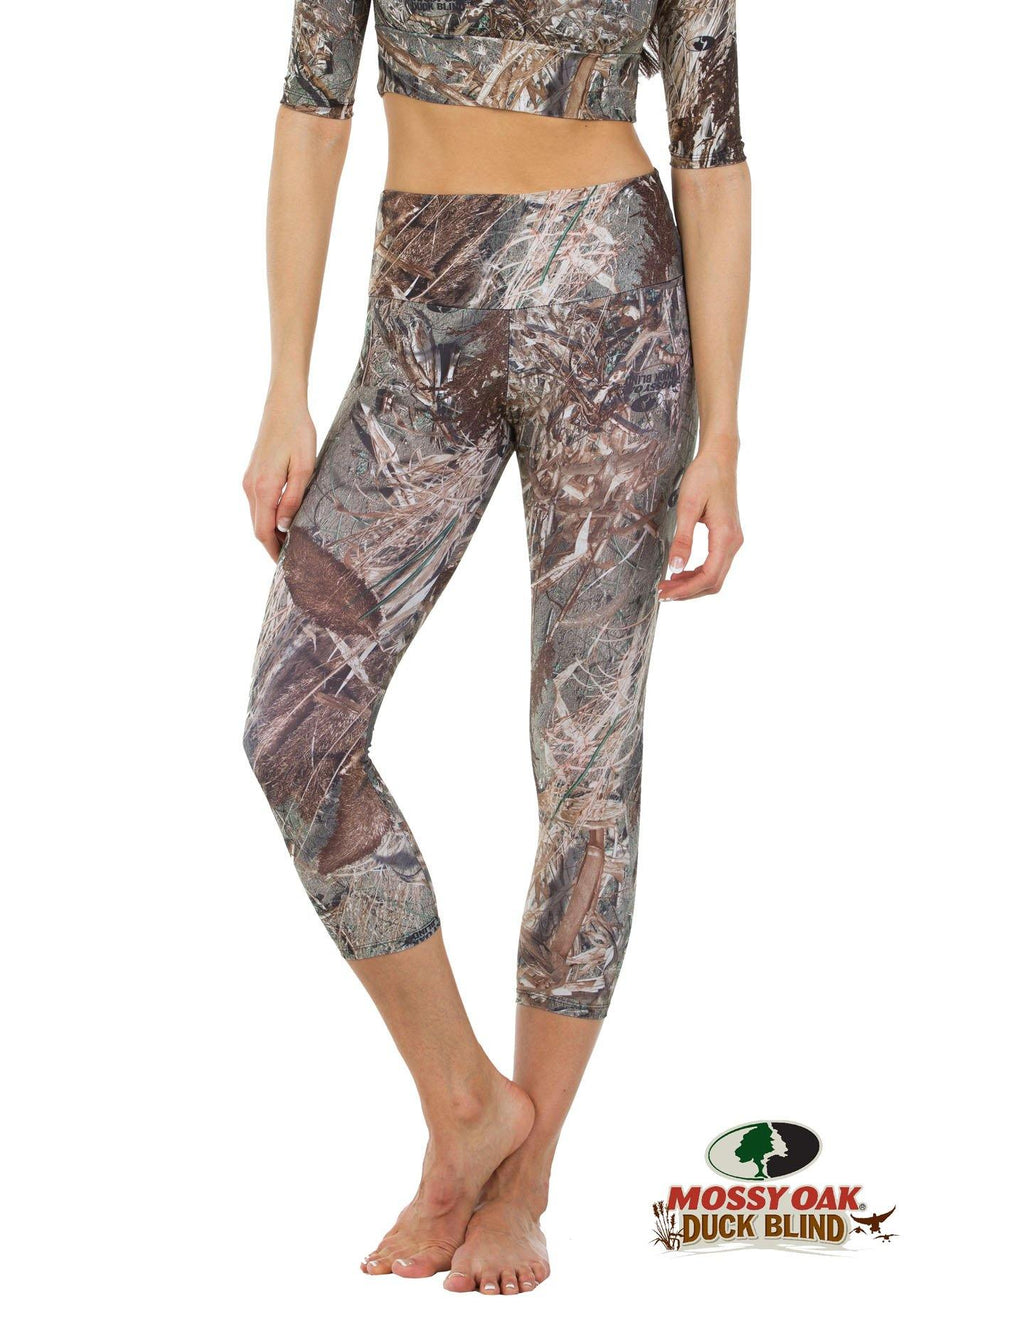 Apsara Leggings High Waist Cropped, Mossy Oak Duck Blind